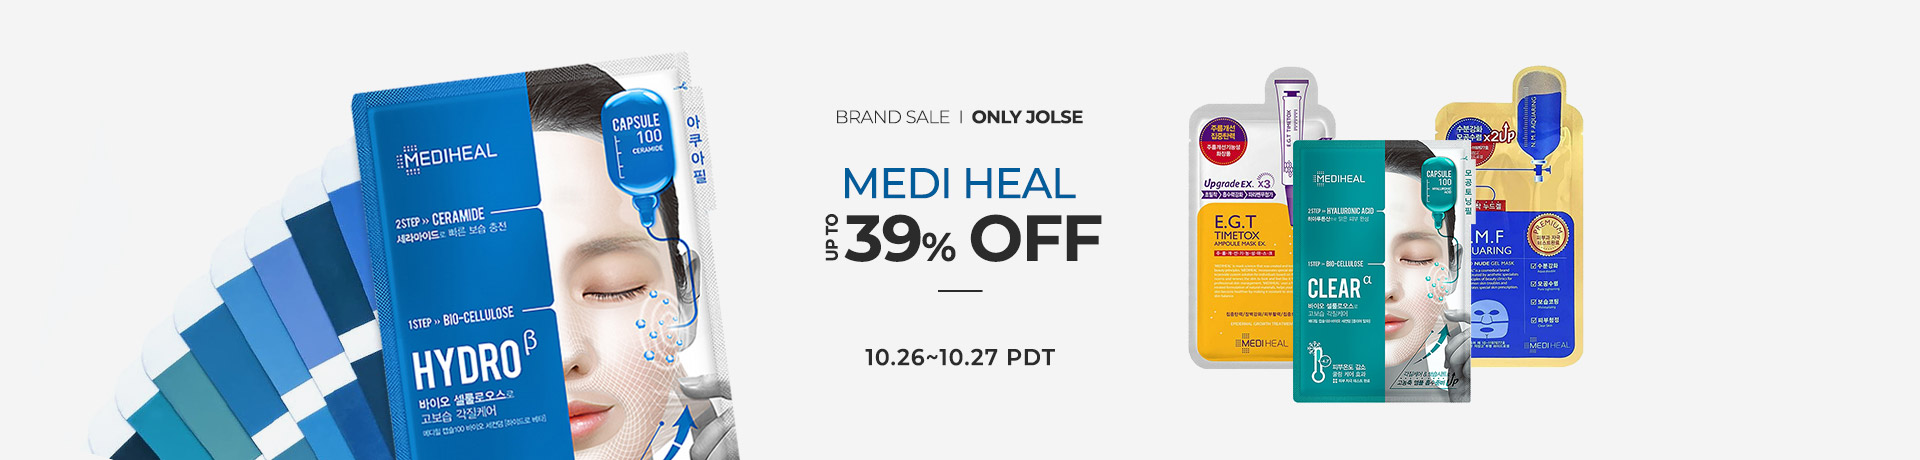 MEDI HEAL Up to 39% OFF